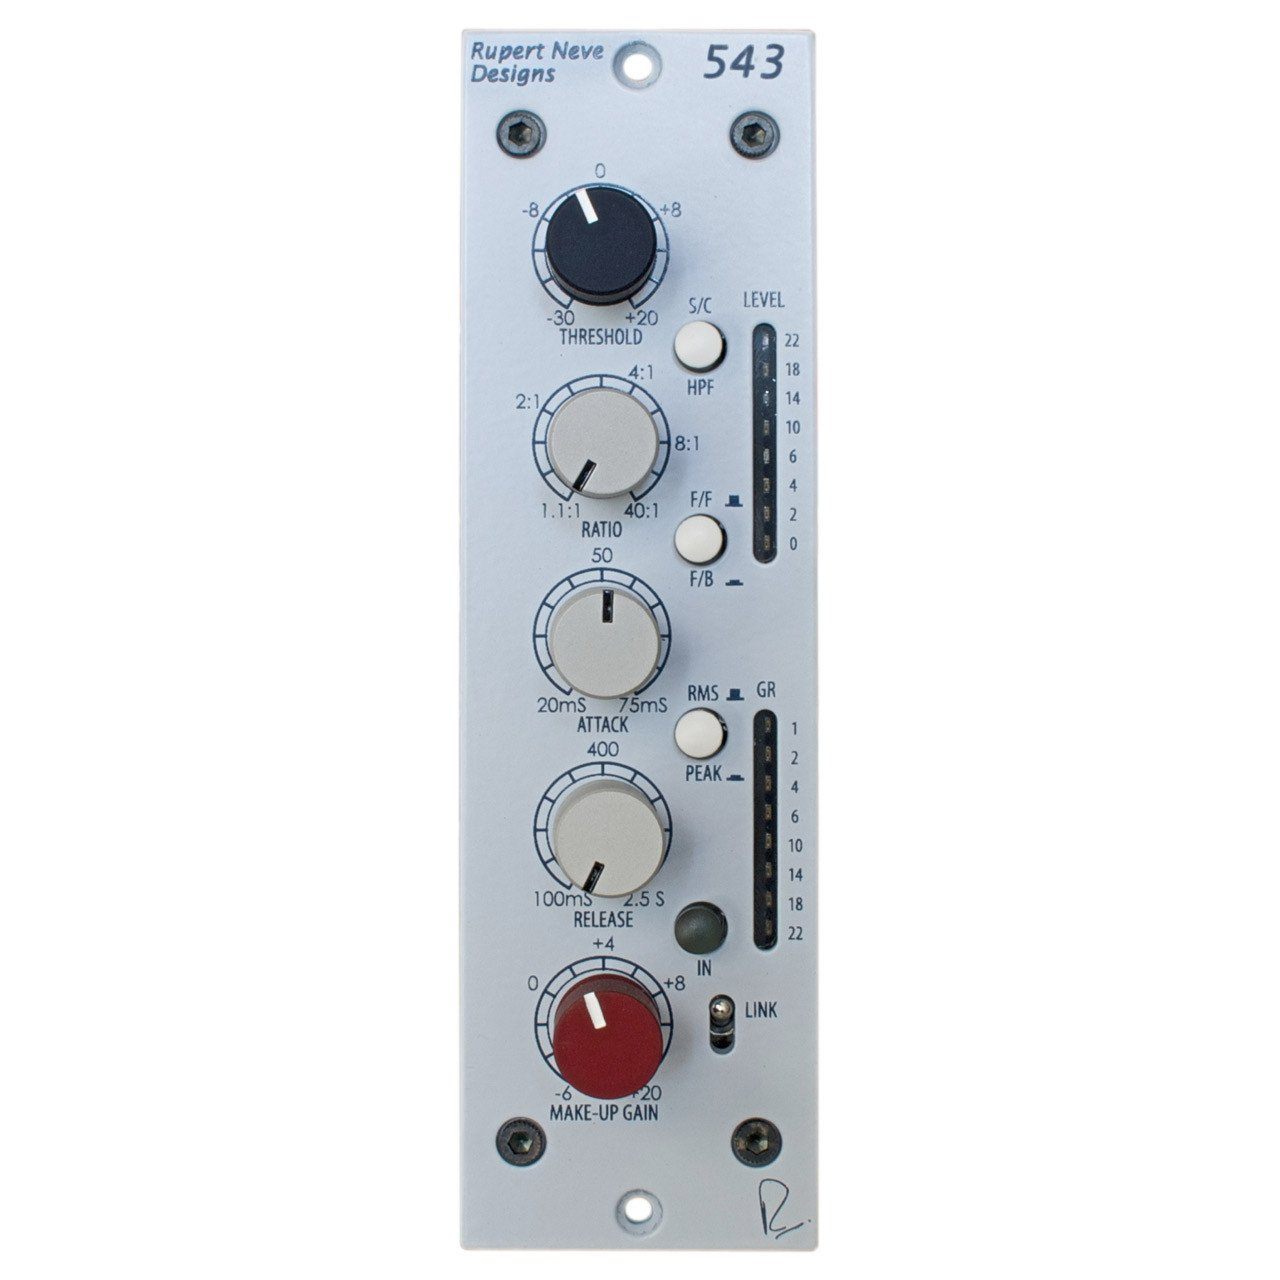 Rupert Neve Designs 543 - 500 Series Compressor